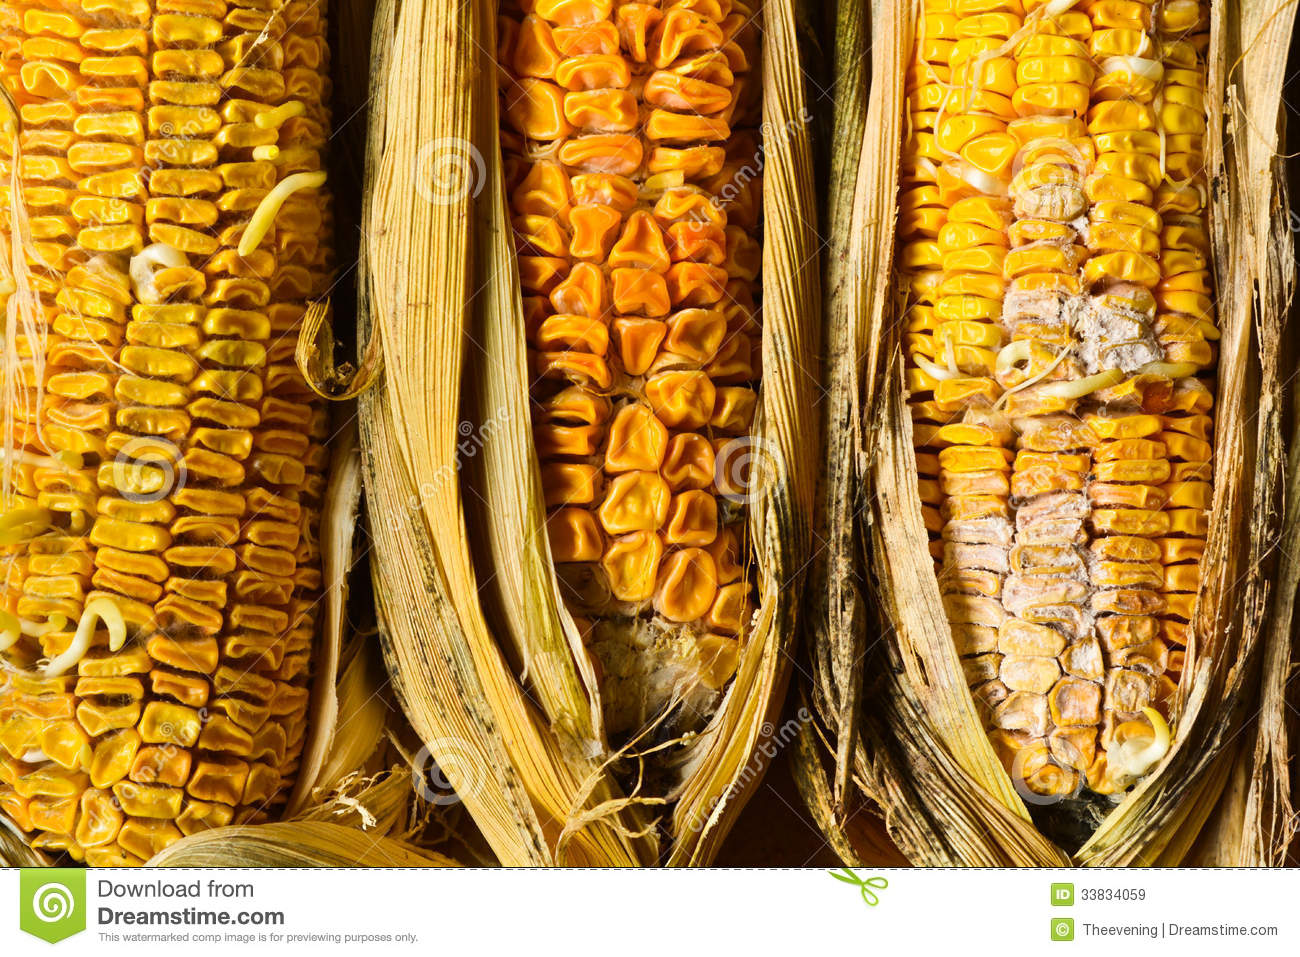 how to make rotten corn